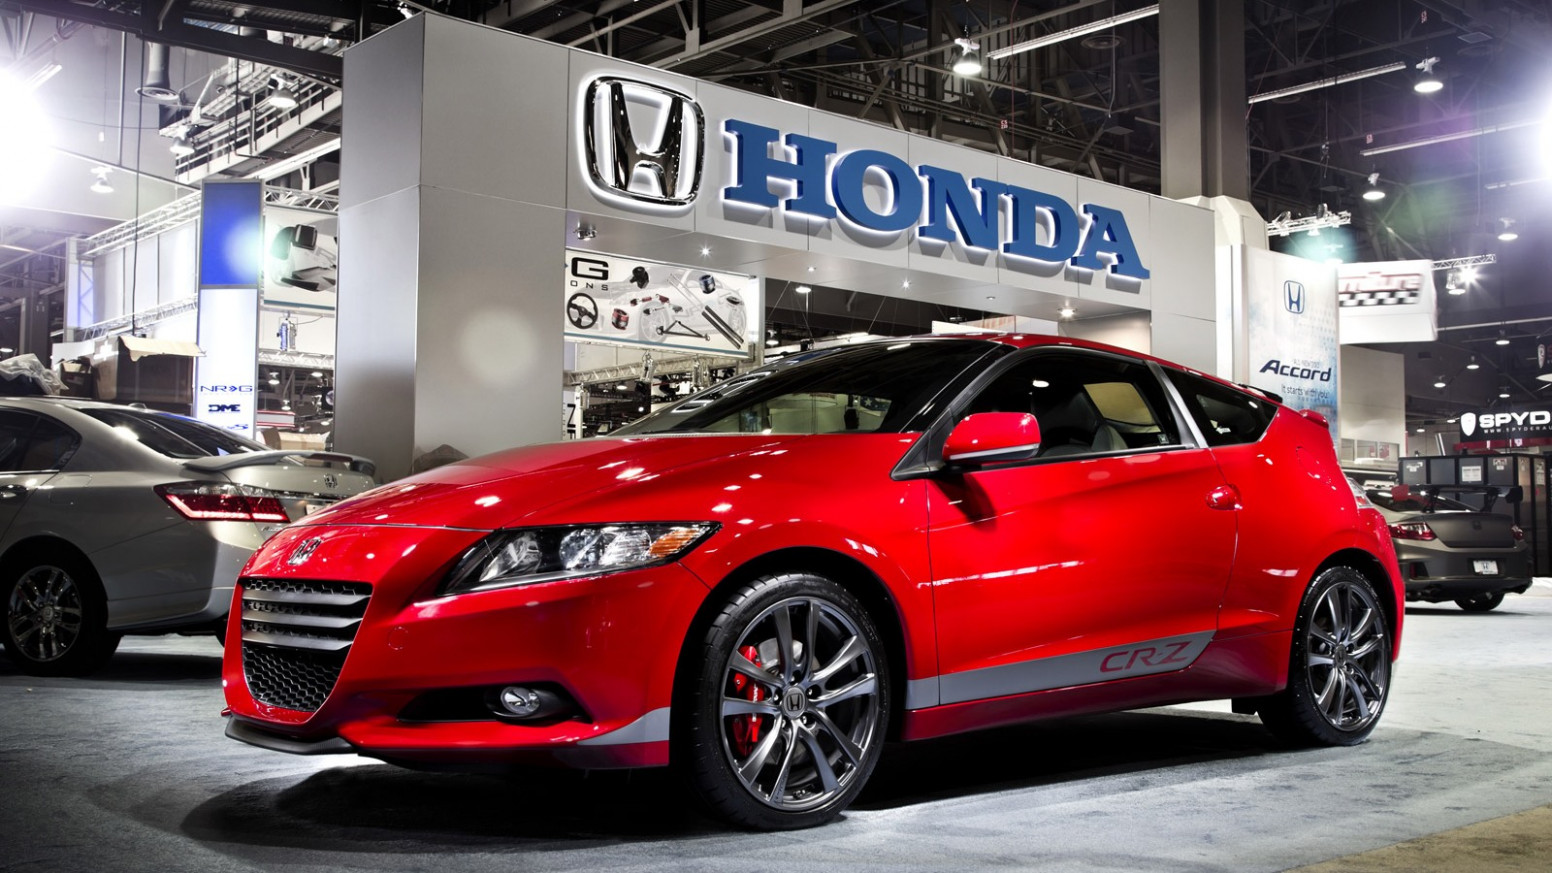 Reviews 2022 Honda Crz